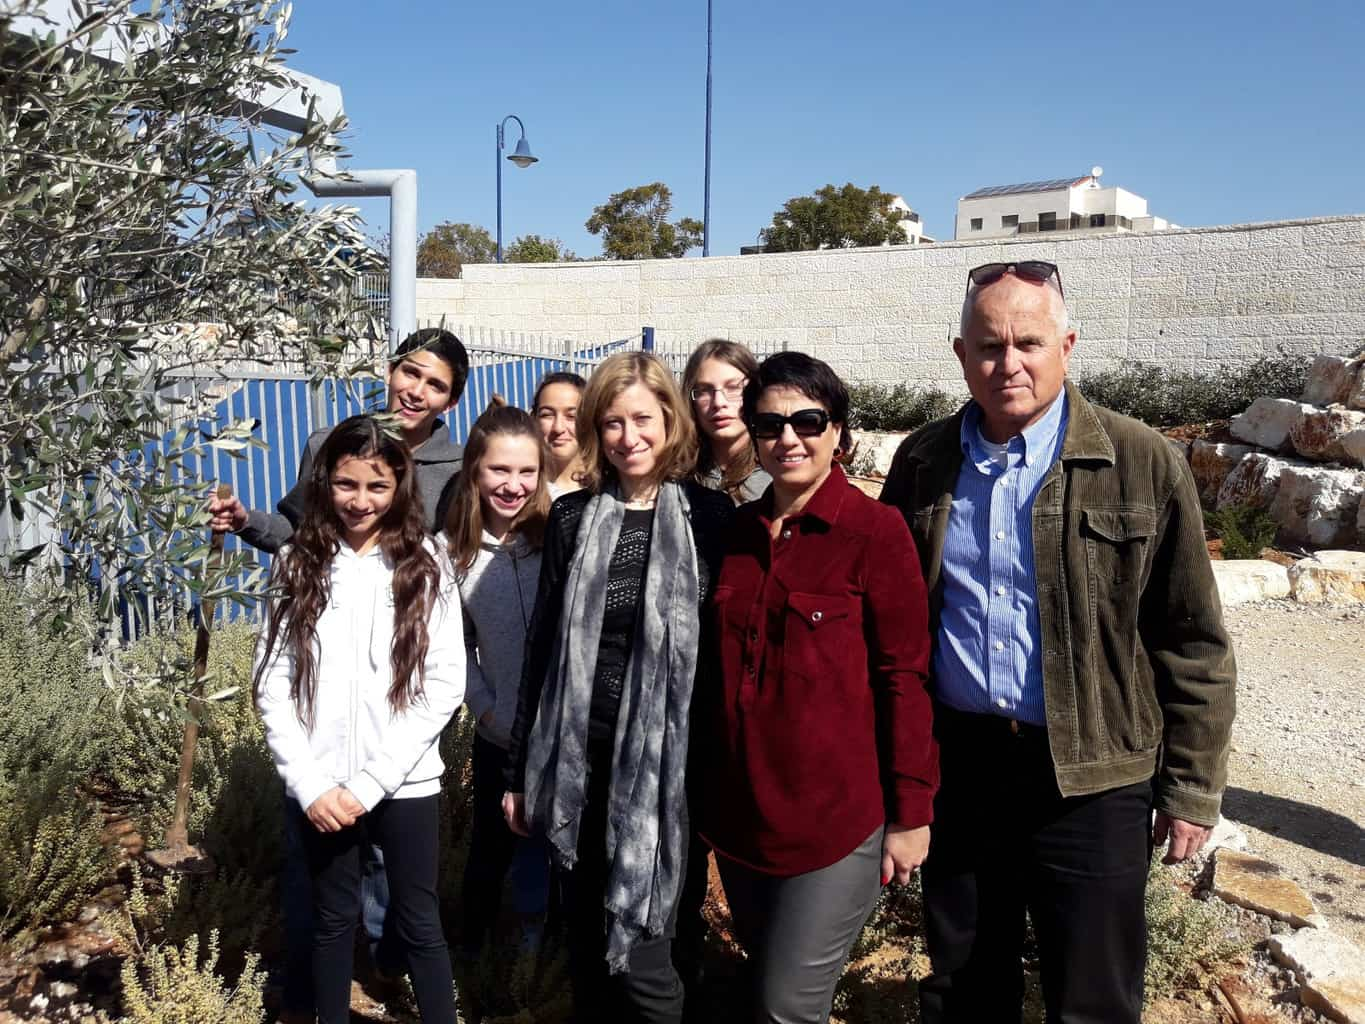 shoham-memphis-partner-city-in-israel-sends-delegation-to-visit-memphis